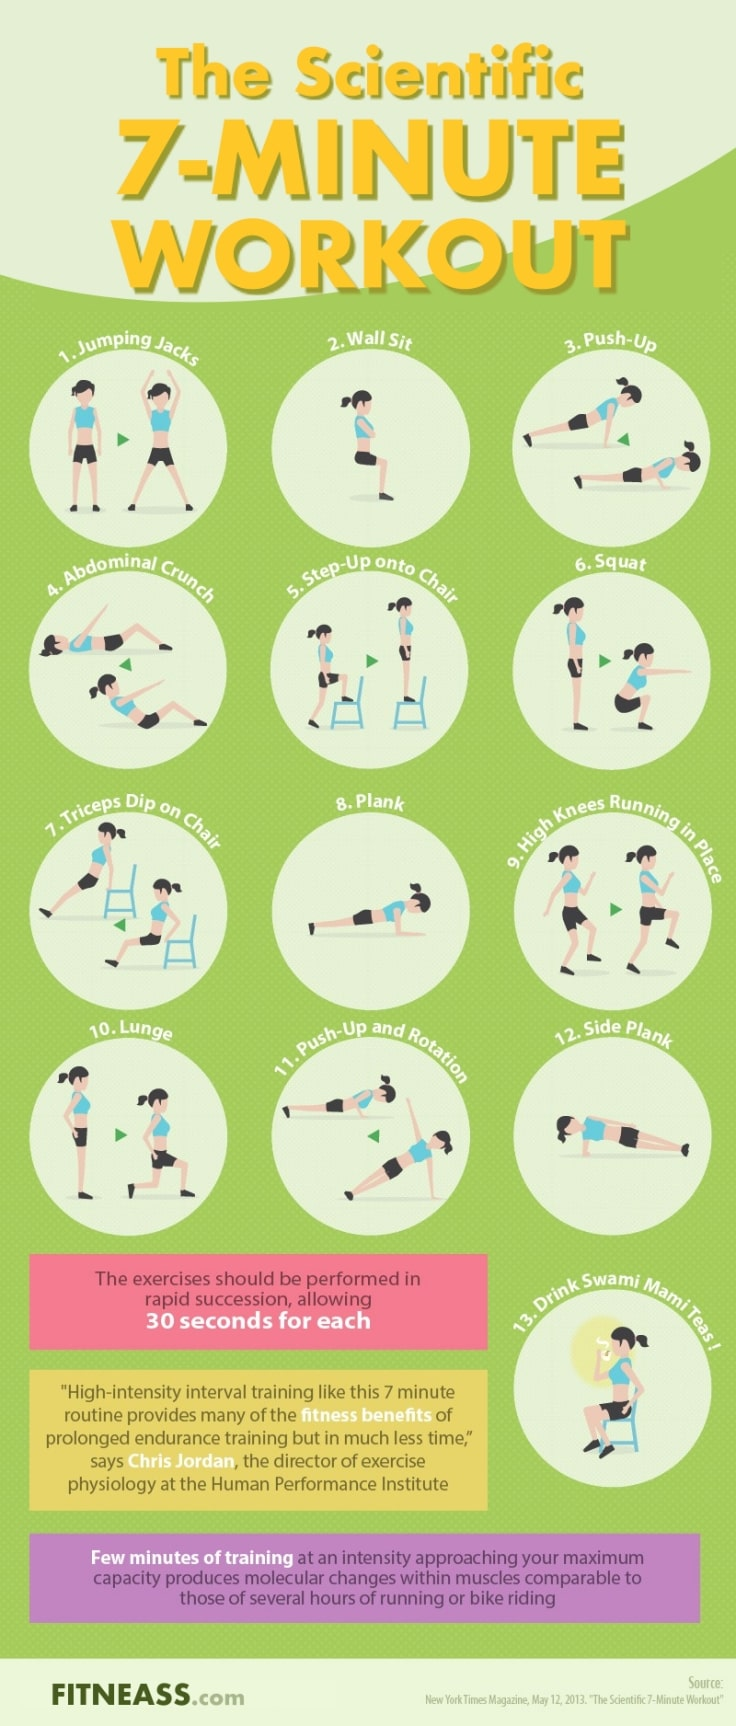 The Scientific 7-Minute Workout - Infographic